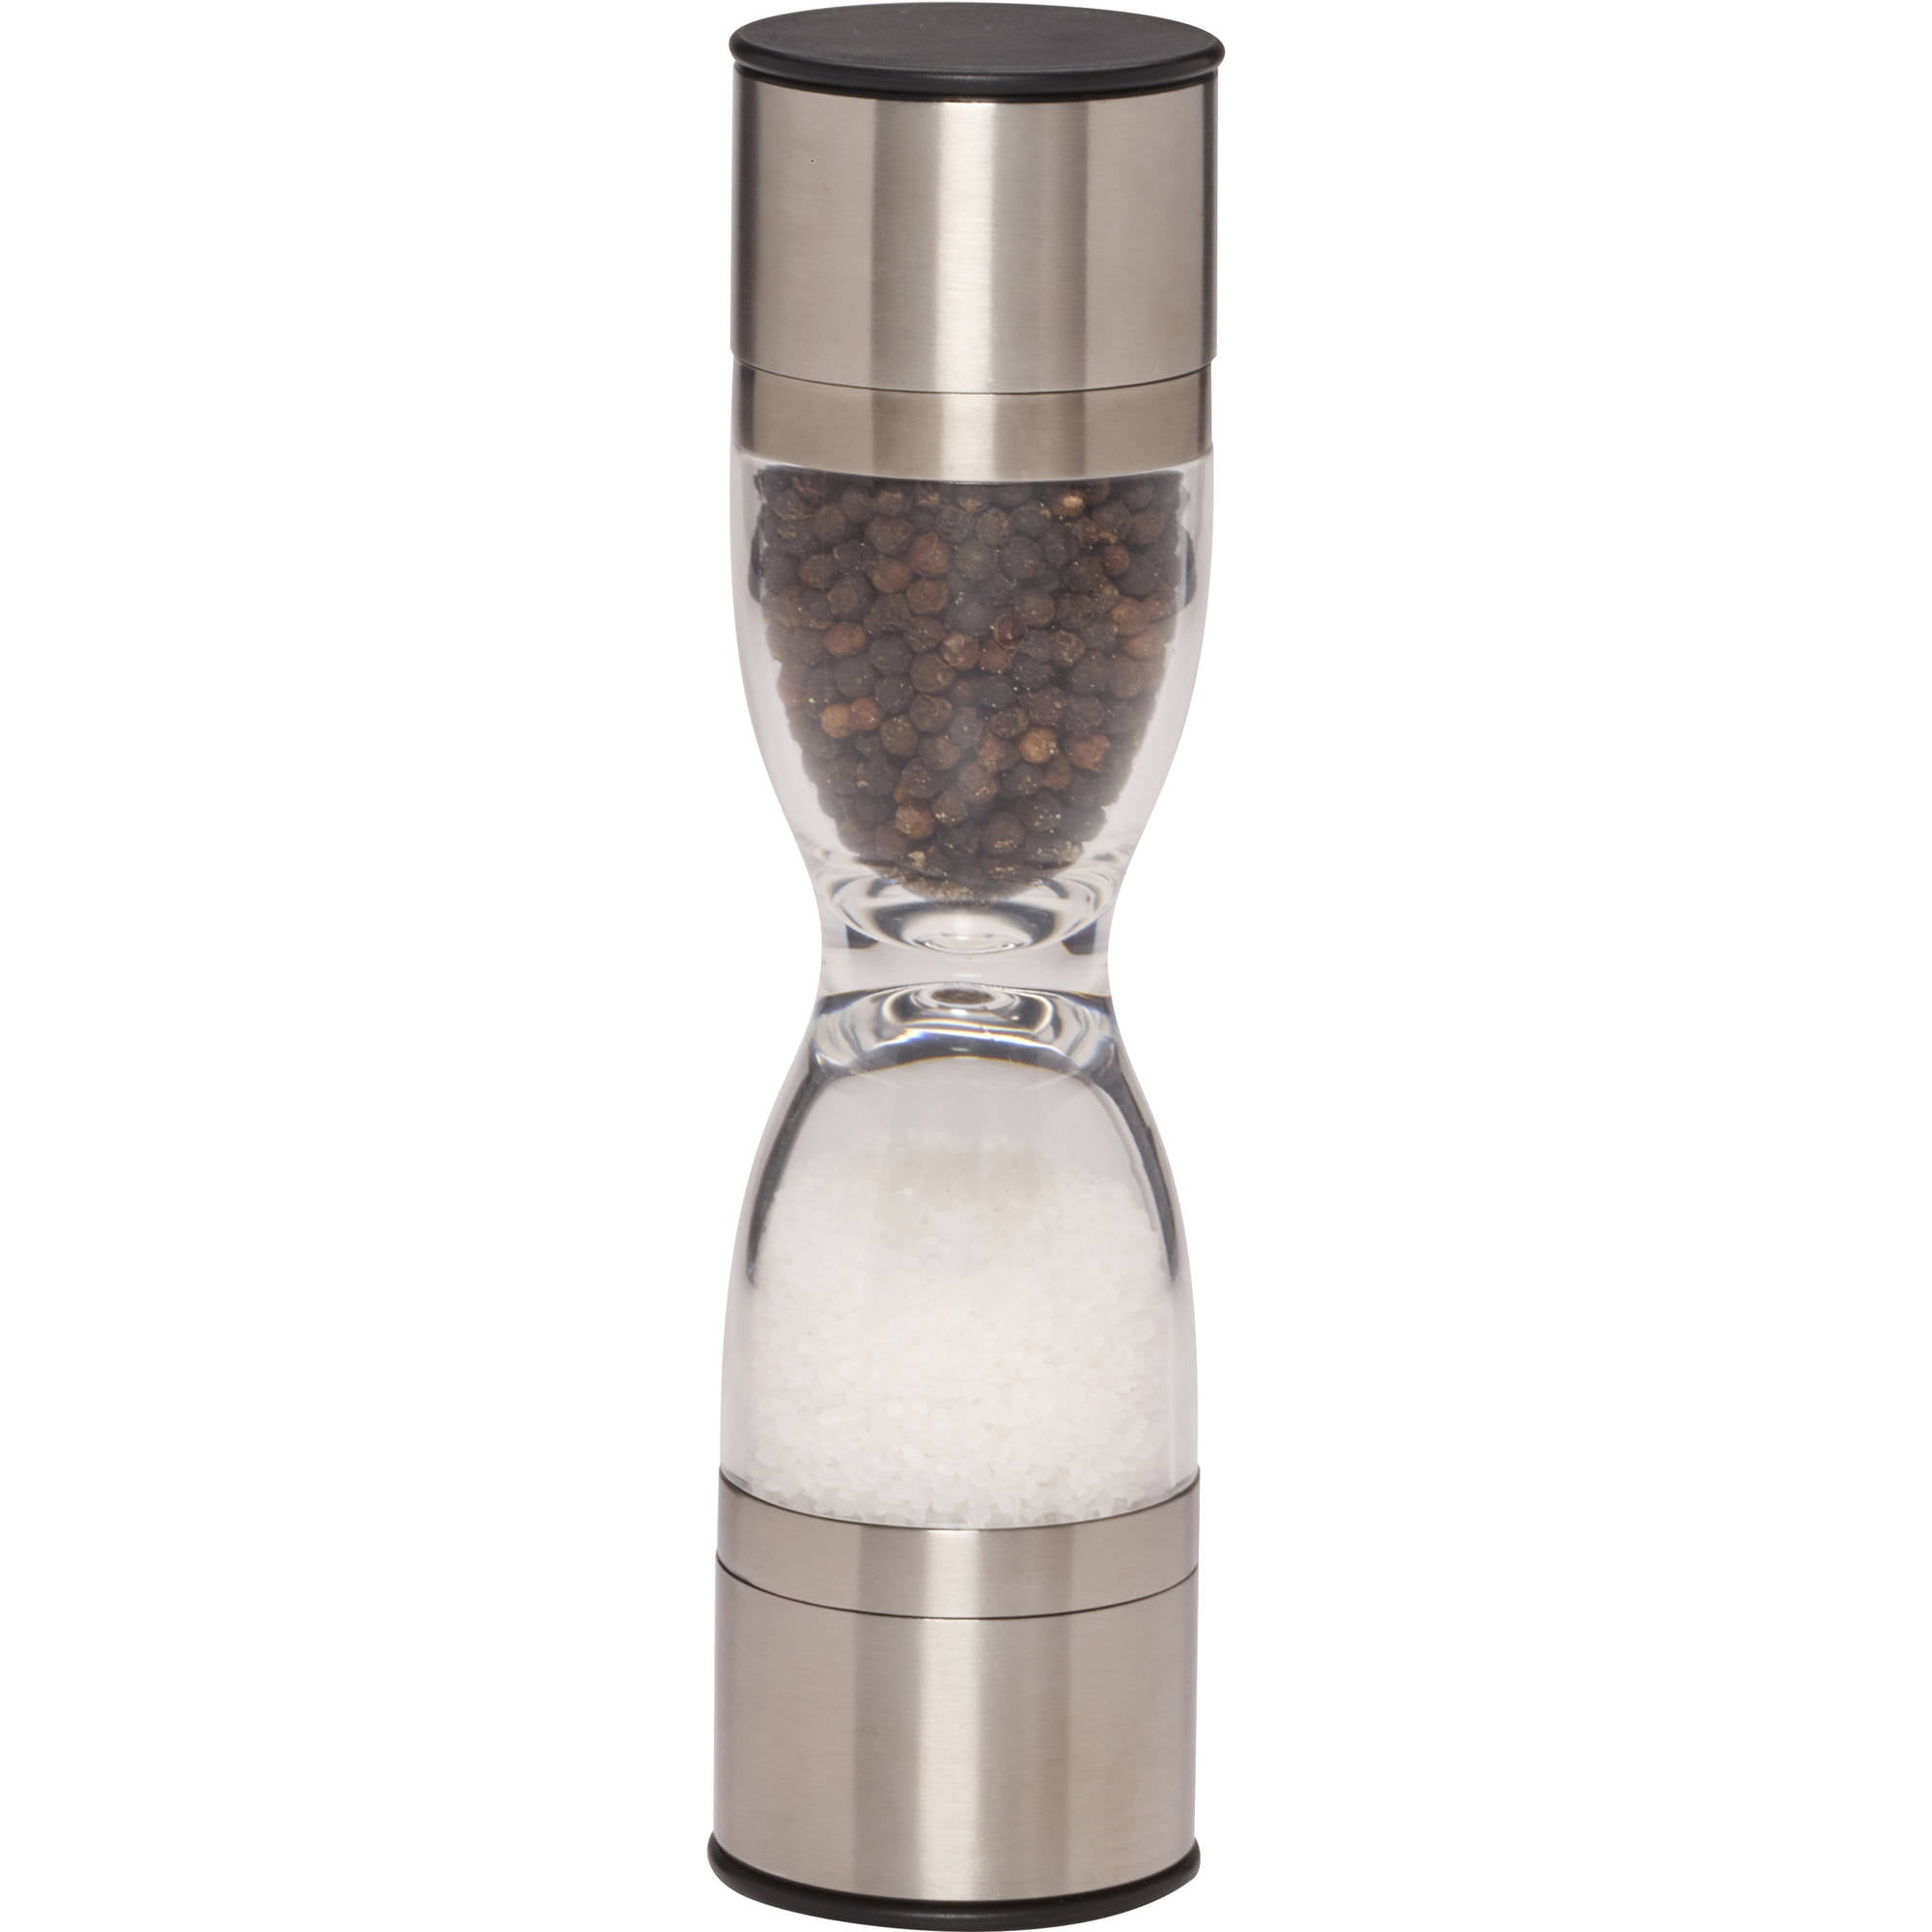 Kamenstein Holden Stainless Steel Dual Salt and Pepper Grinder by Lifetime Brands